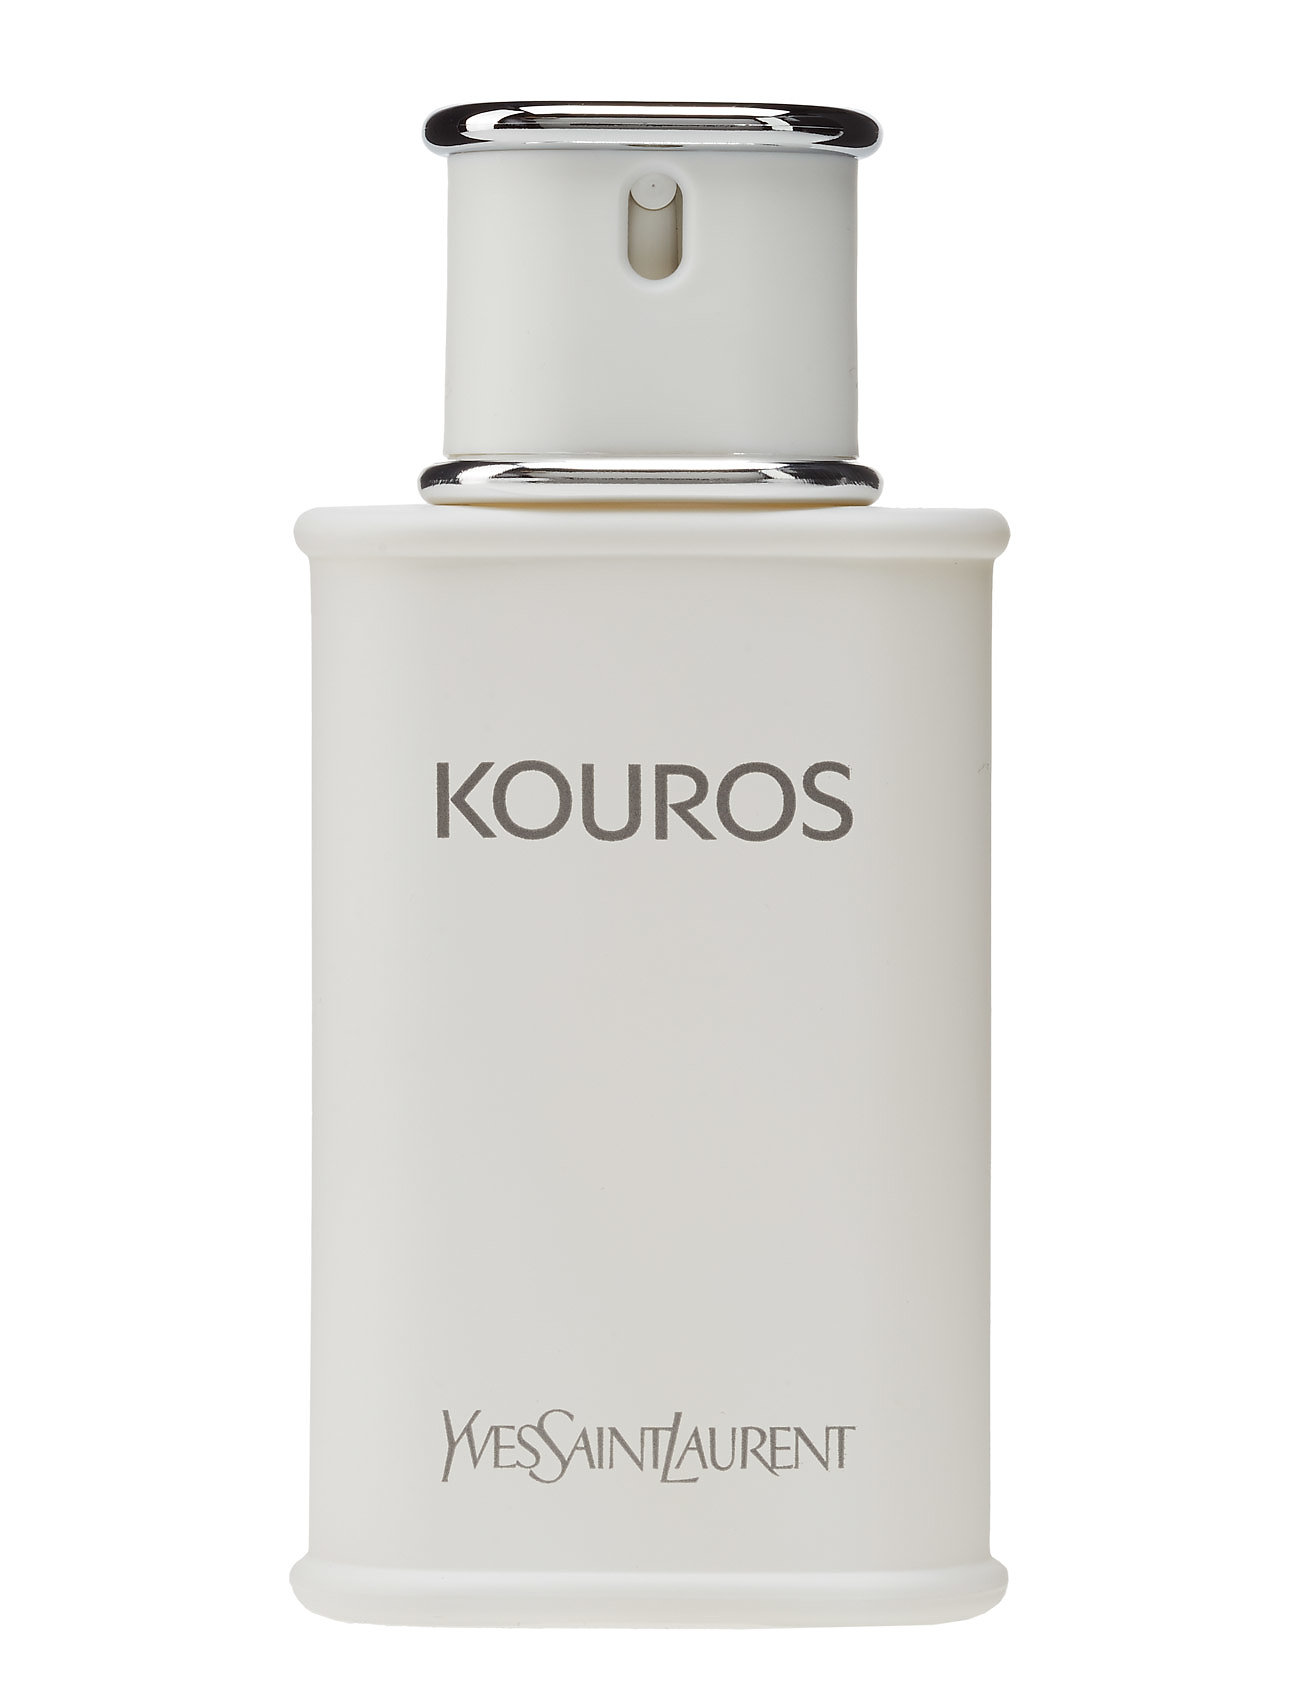 yves saint laurent – Kouros eau de toilette natural spray 100 ml. på boozt.com dk